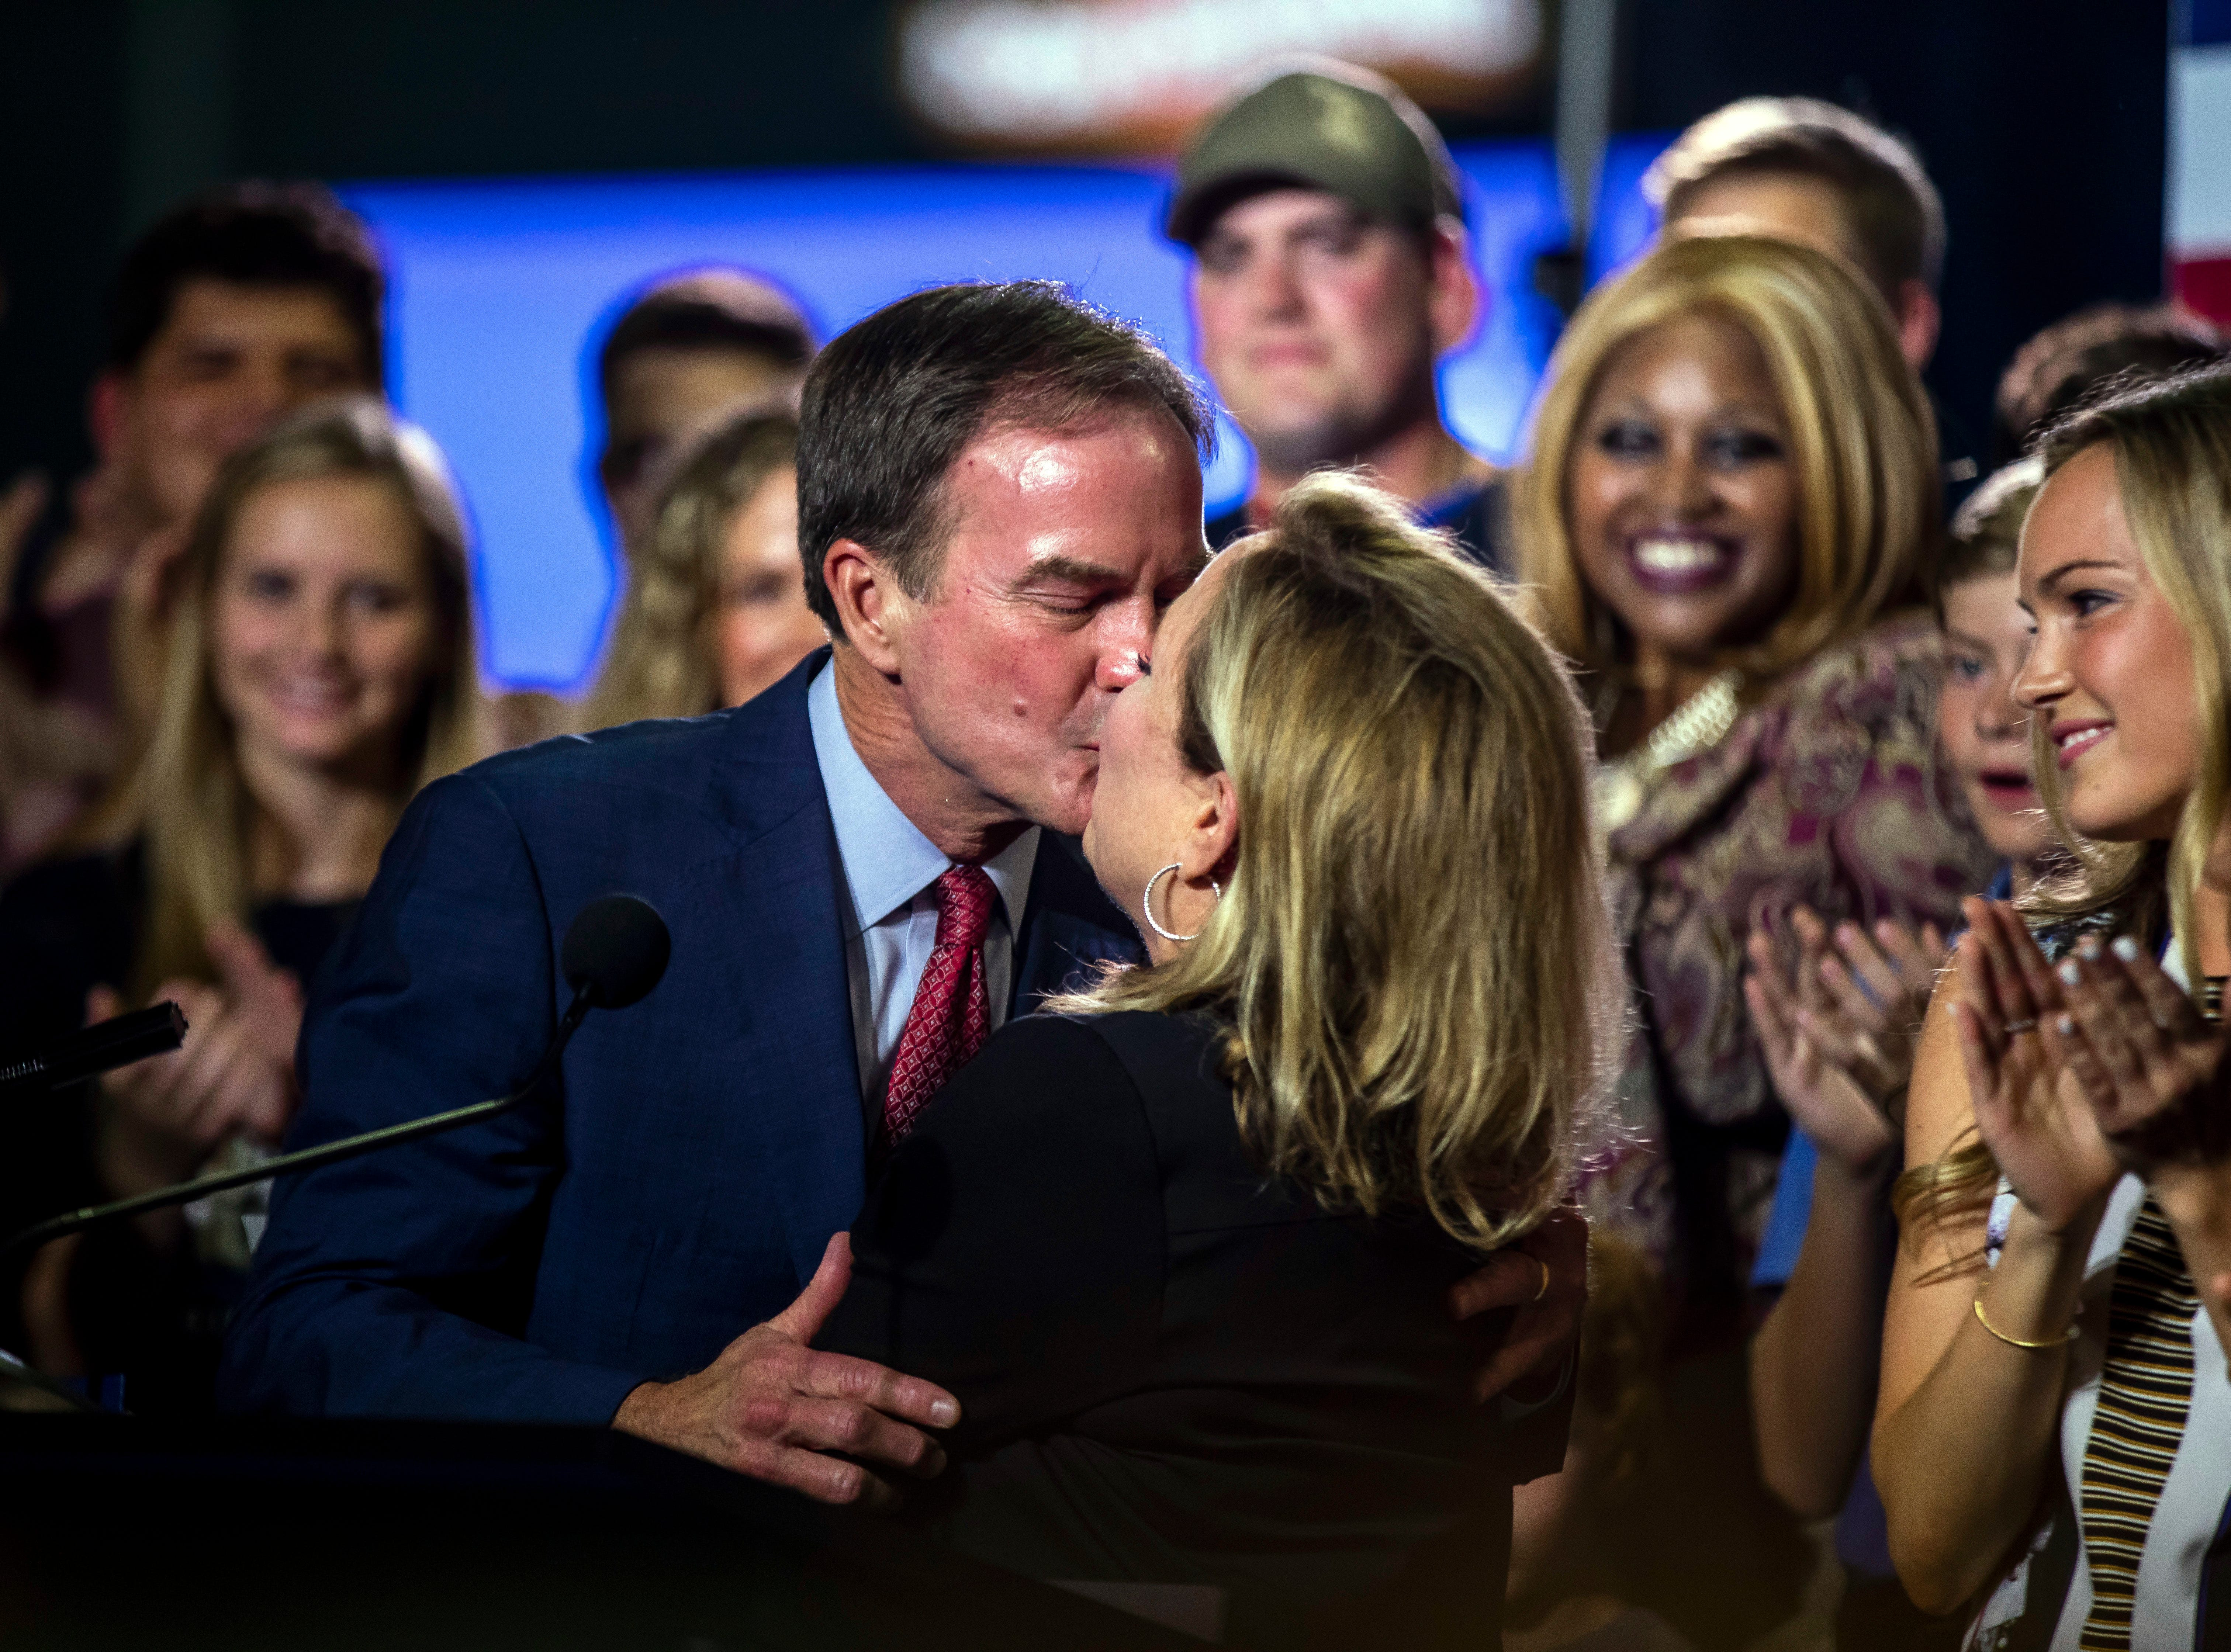 Michigan Attorney General Bill Schuette kisses his wife, Cynthia, as he's surrounded by family, friends and supporters, Tuesday, Aug. 7, 2018, in Midland, Mich.